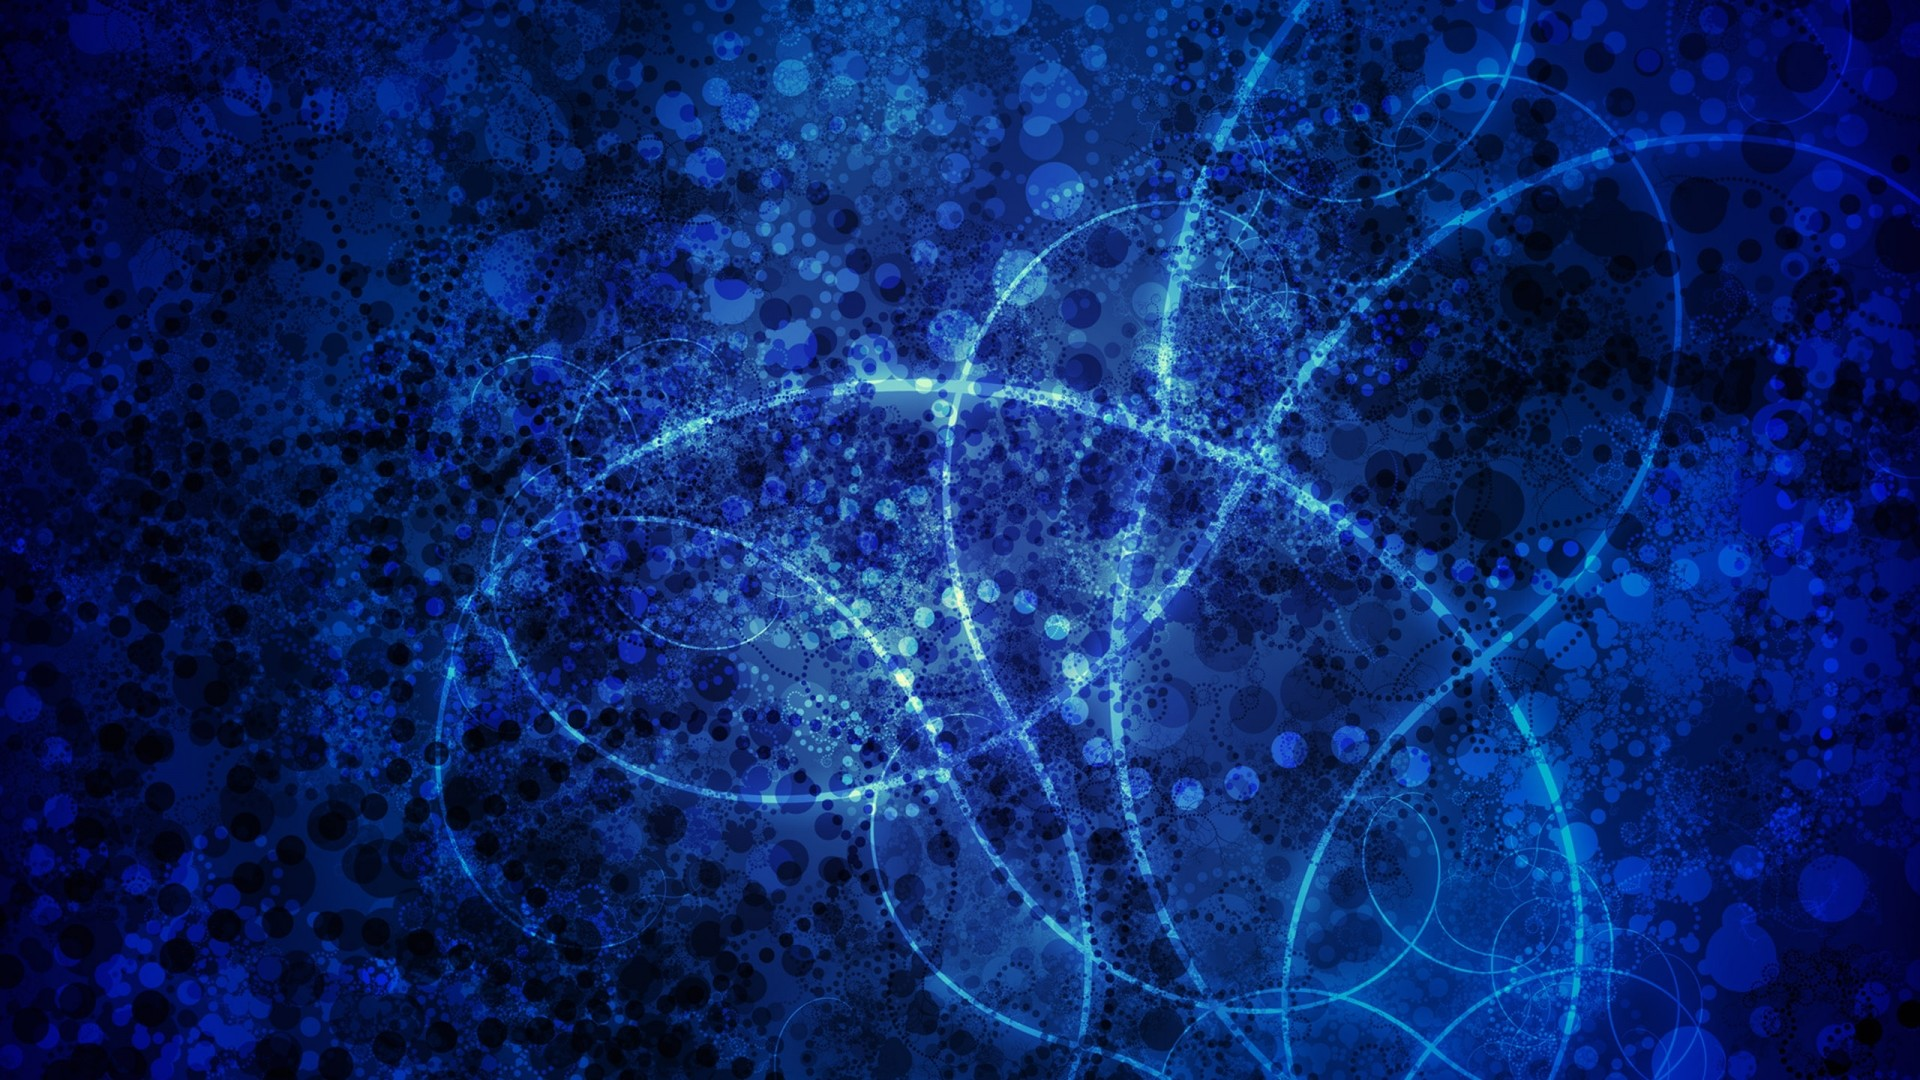 Particle physics wallpaper